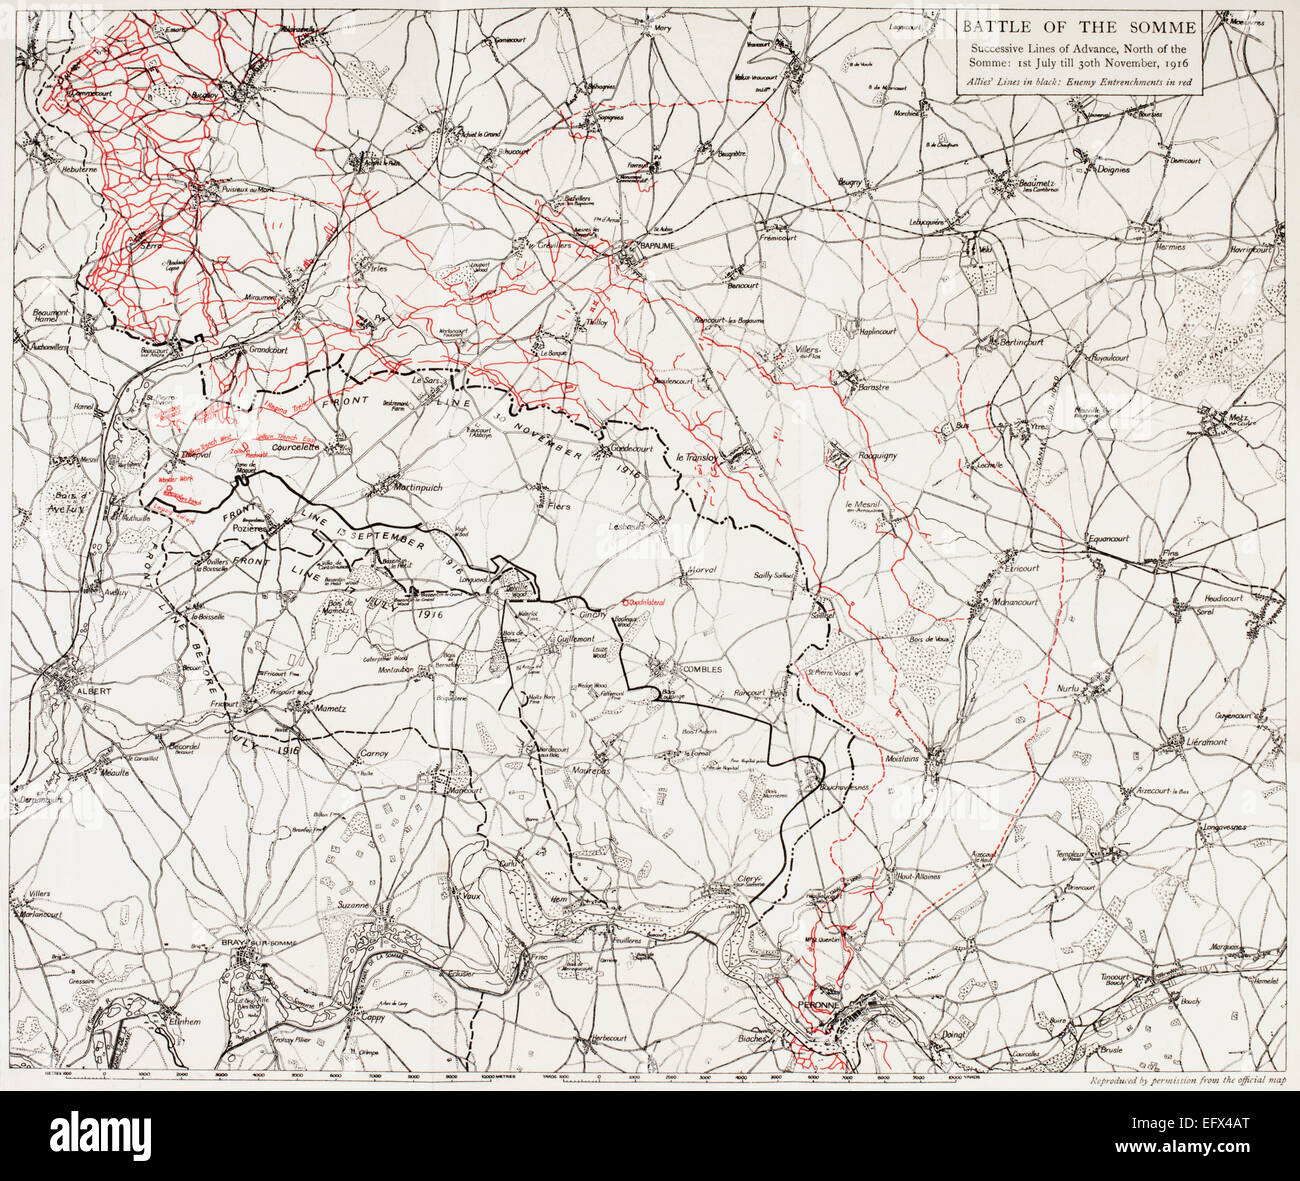 Map of the Battle of the Somme, or the Somme Offensive in the ...